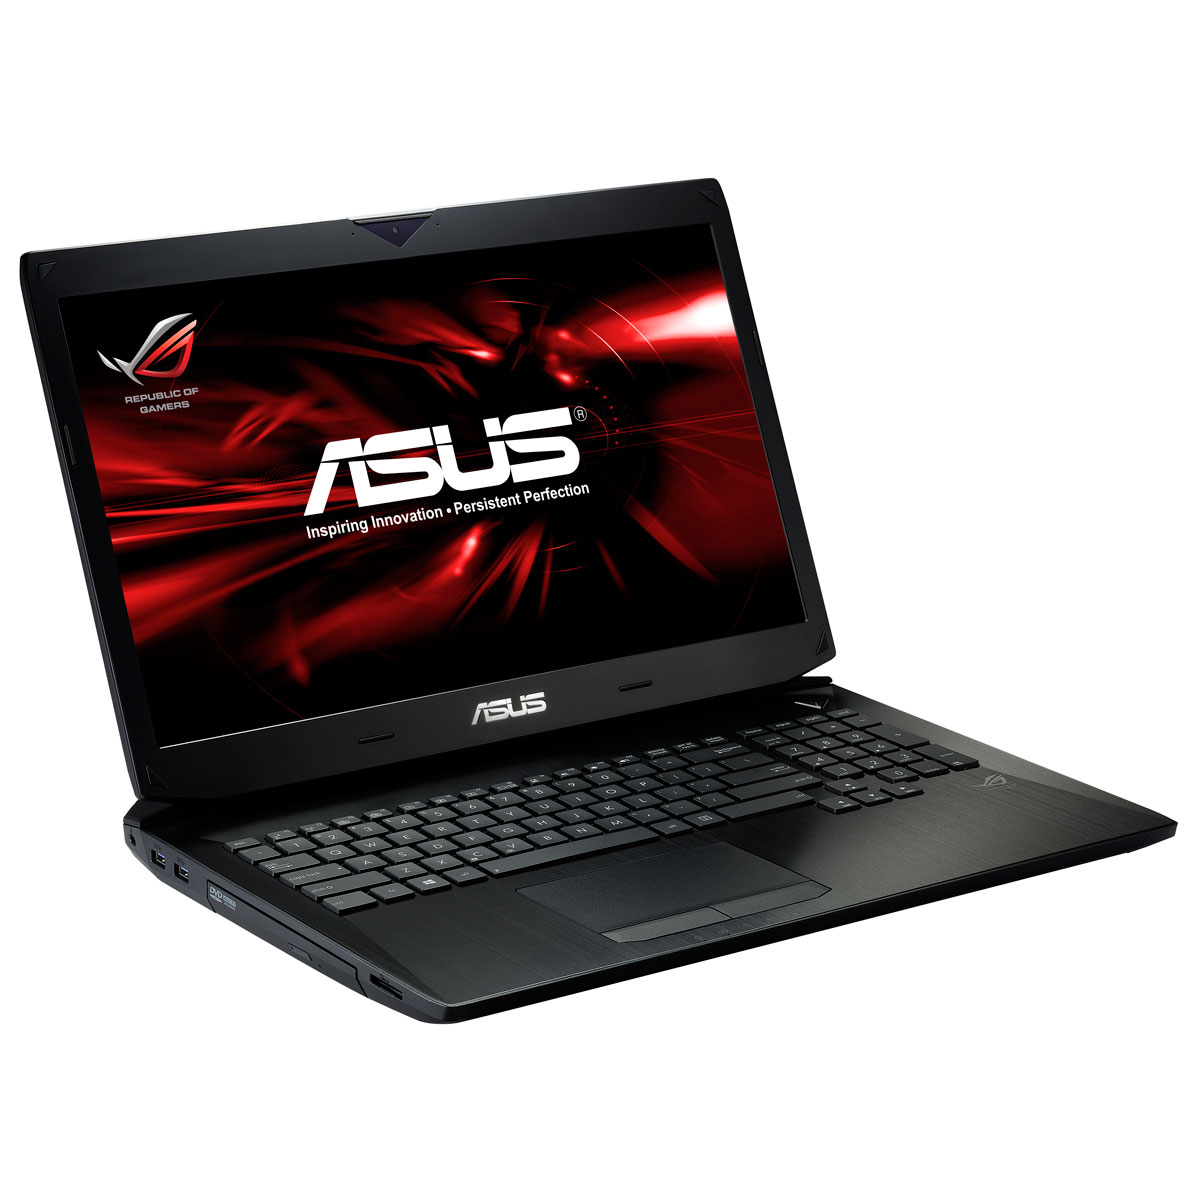 "PC portable ASUS G750JH-T4182H Intel Core i7-4700HQ 32 Go SSD 256 Go + HDD 1 To 17.3"" LED NVIDIA GeForce GTX 780M Lecteur Blu-ray/Graveur DVD Wi-Fi N/Bluetooth Webcam Windows 8 64 bits (garantie constructeur 1 an)"